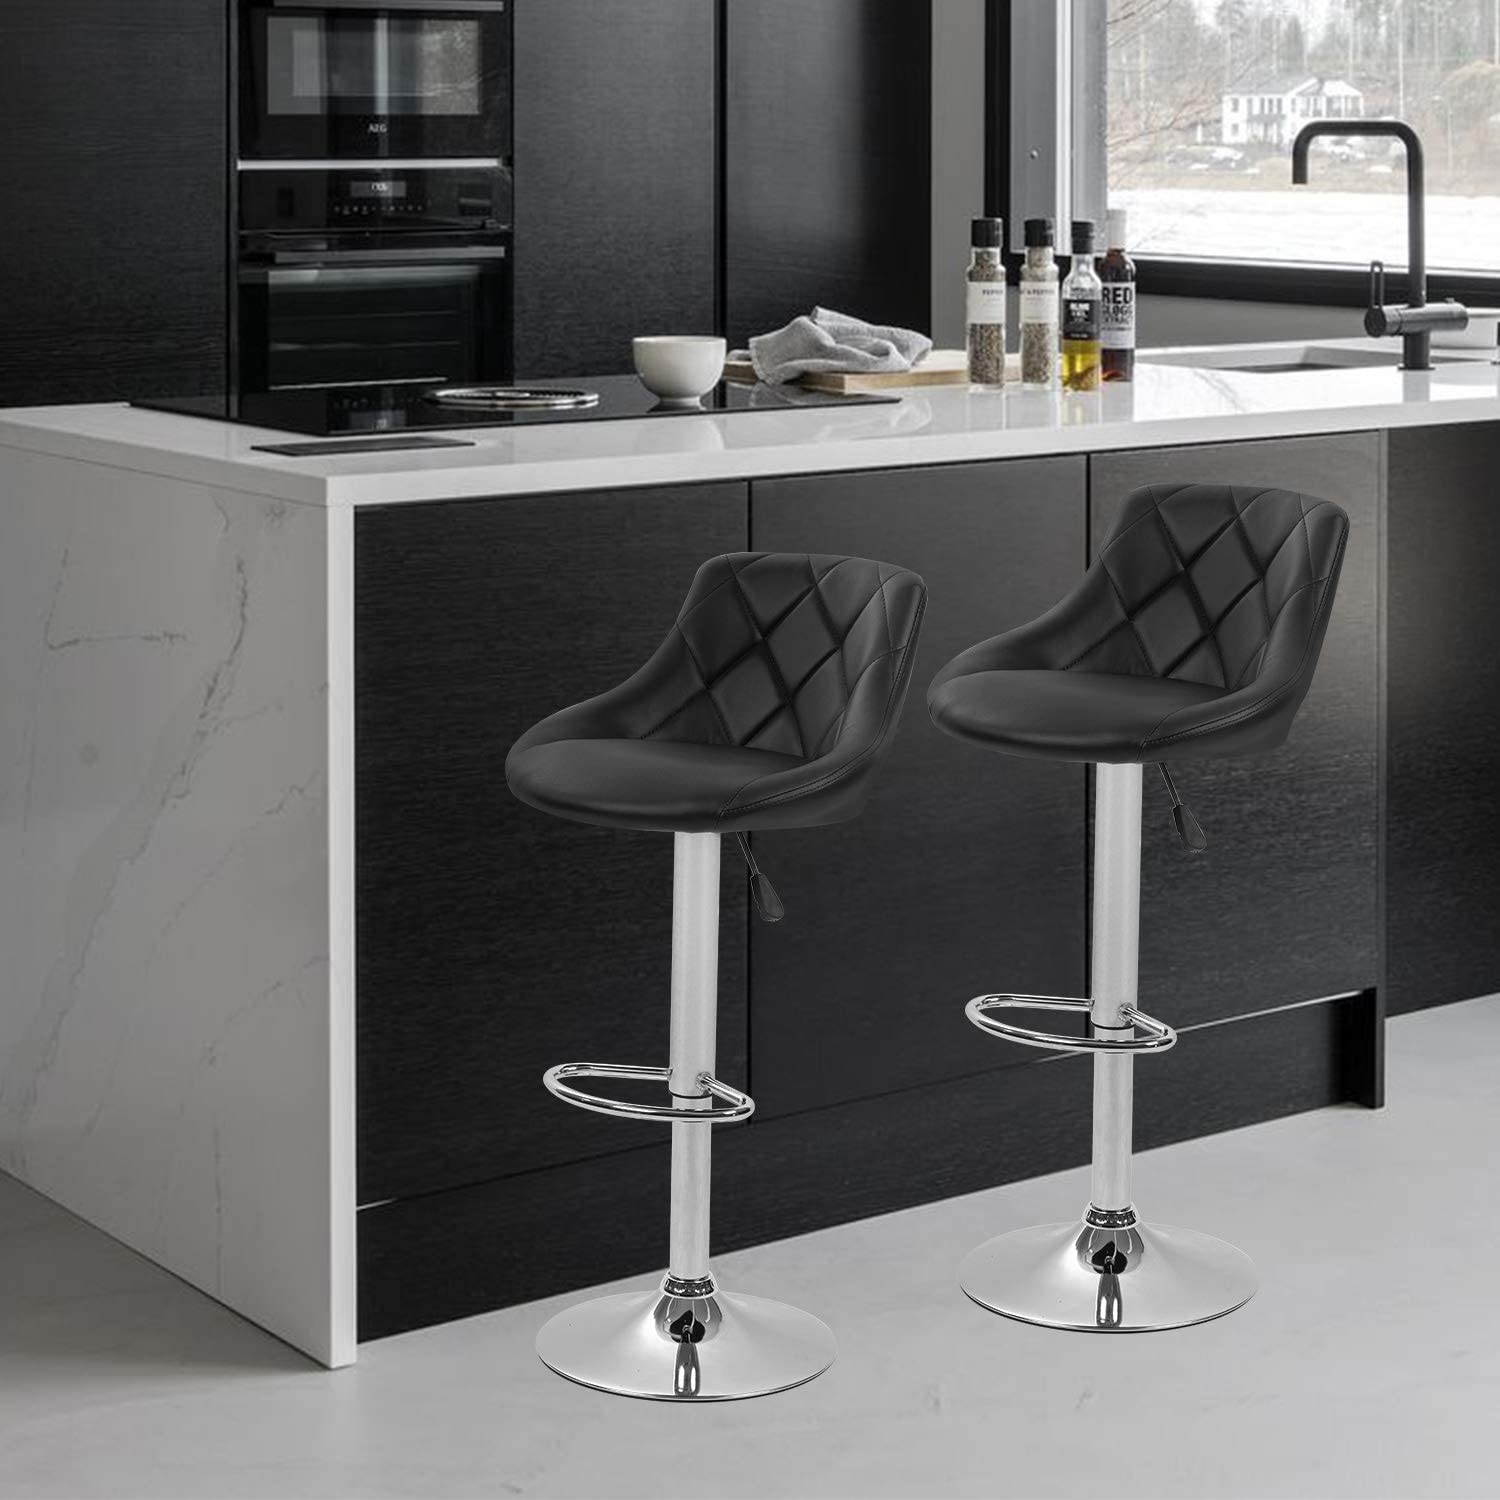 Bar Stools Set of 9 Barstools Swivel Stool Height Adjustable Bar Chairs  with Back PU Leather Swivel Bar Stool Kitchen Counter Stools Dining Chairs